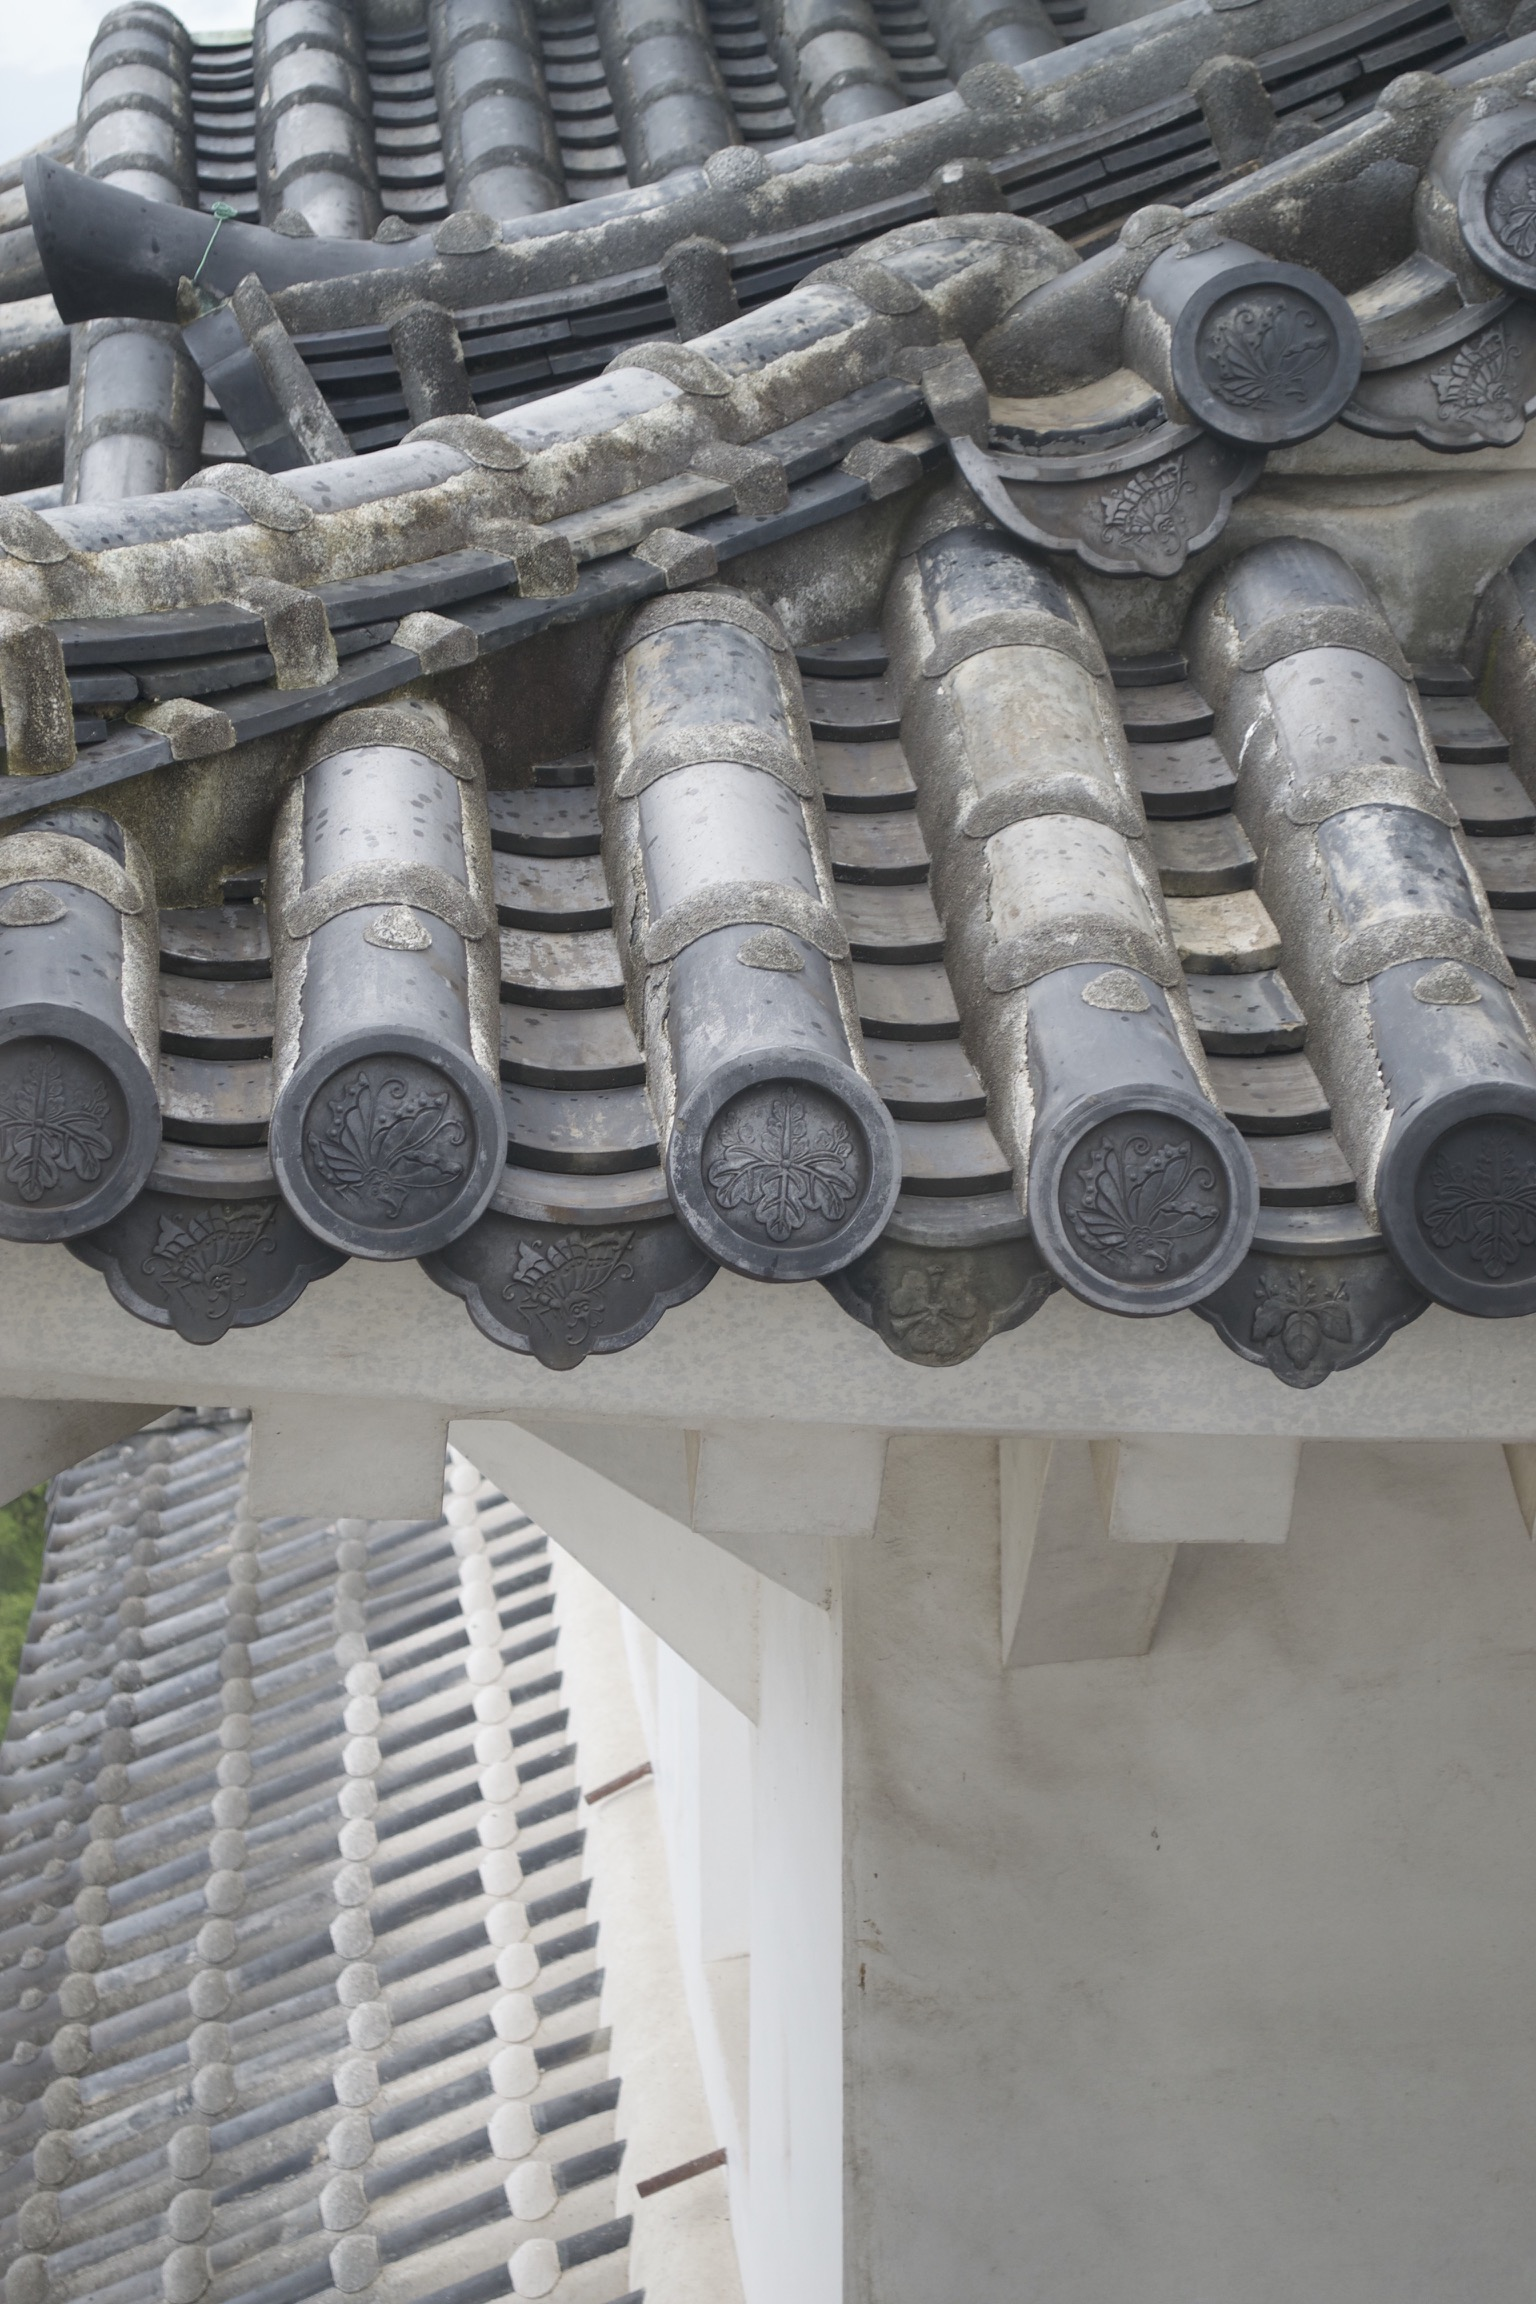 A close-up on the tiles shows circular caps at the end of the roof.